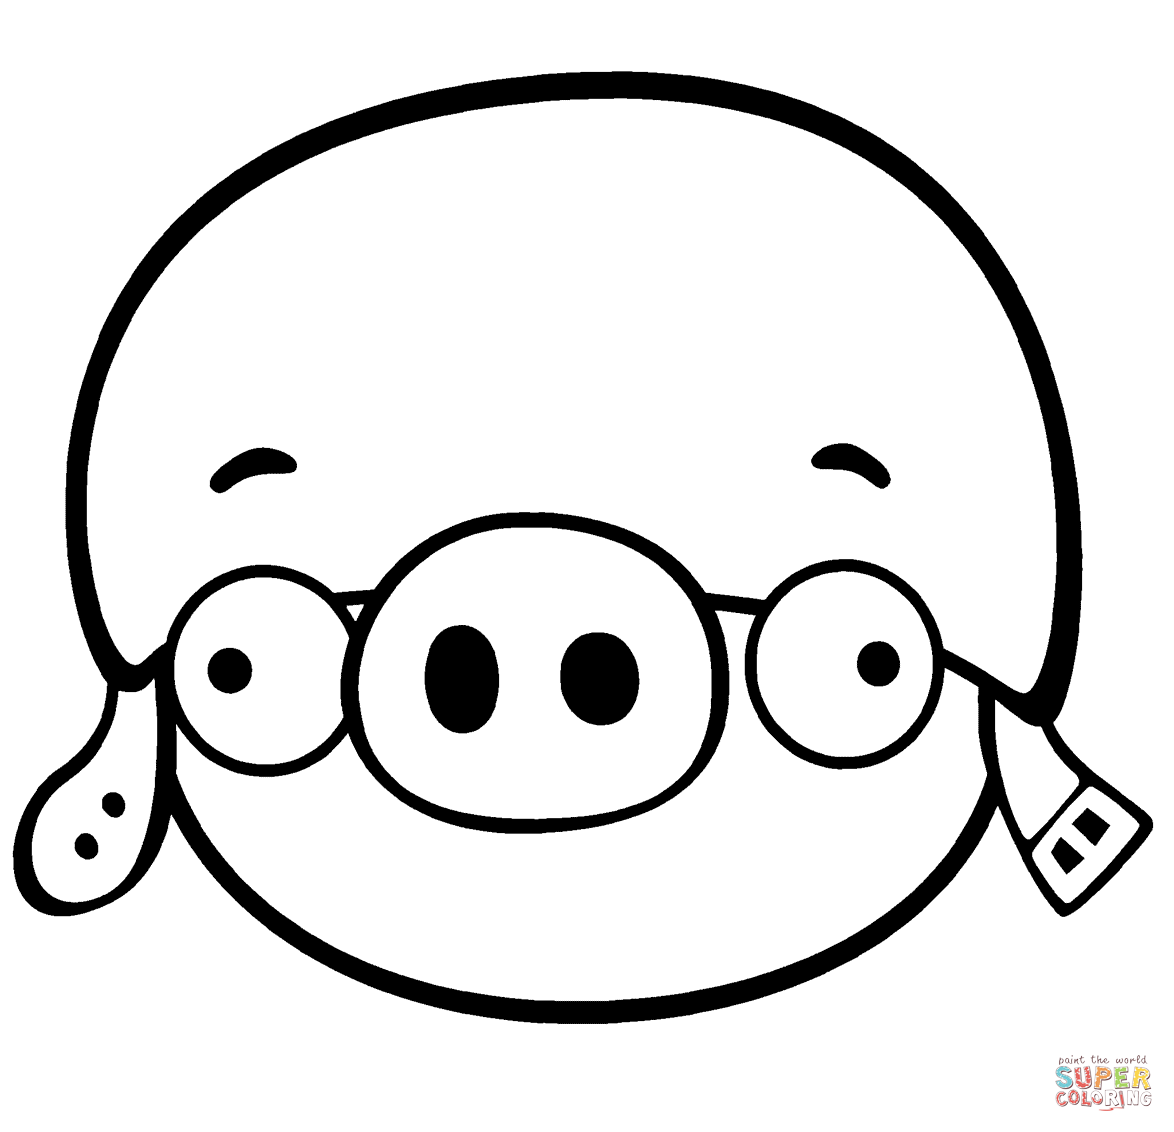 1174x1132 Corporal Pig Coloring Page Free Printable Coloring Pages